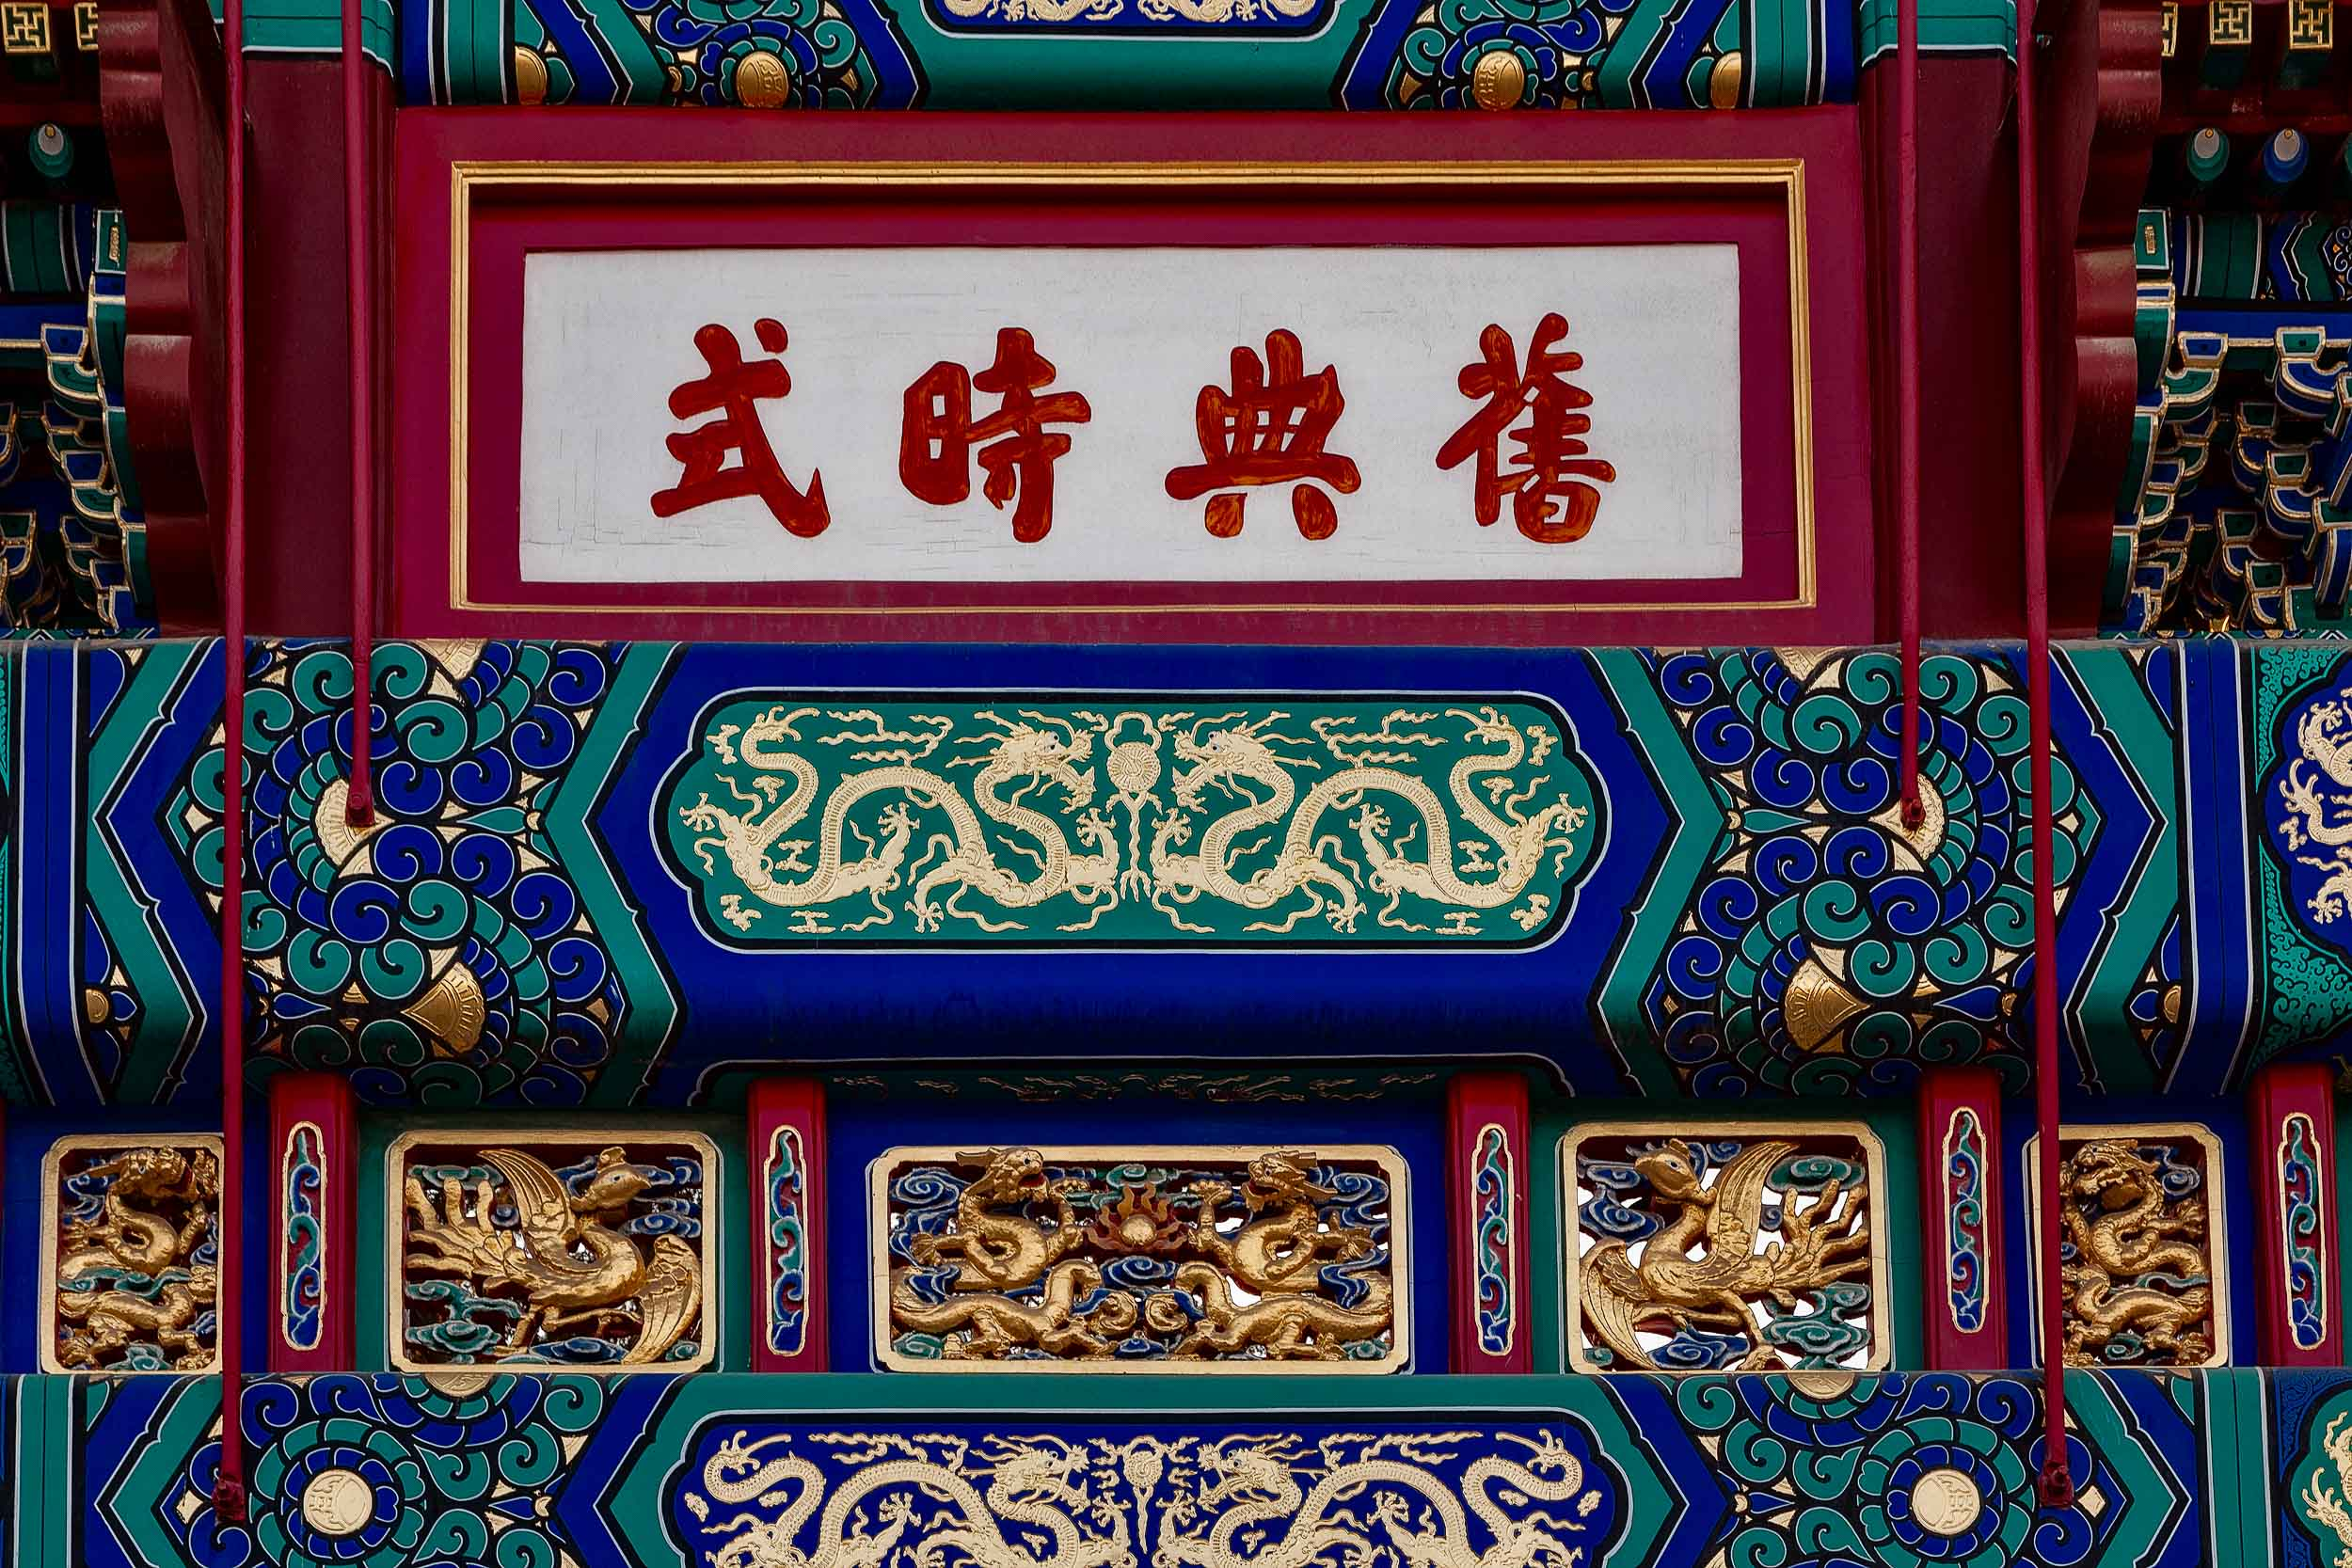 China tourism is full of beauty such as this colorful and highly textured architectural detail at the    Temple Of Heaven    in    Beijing, China   .